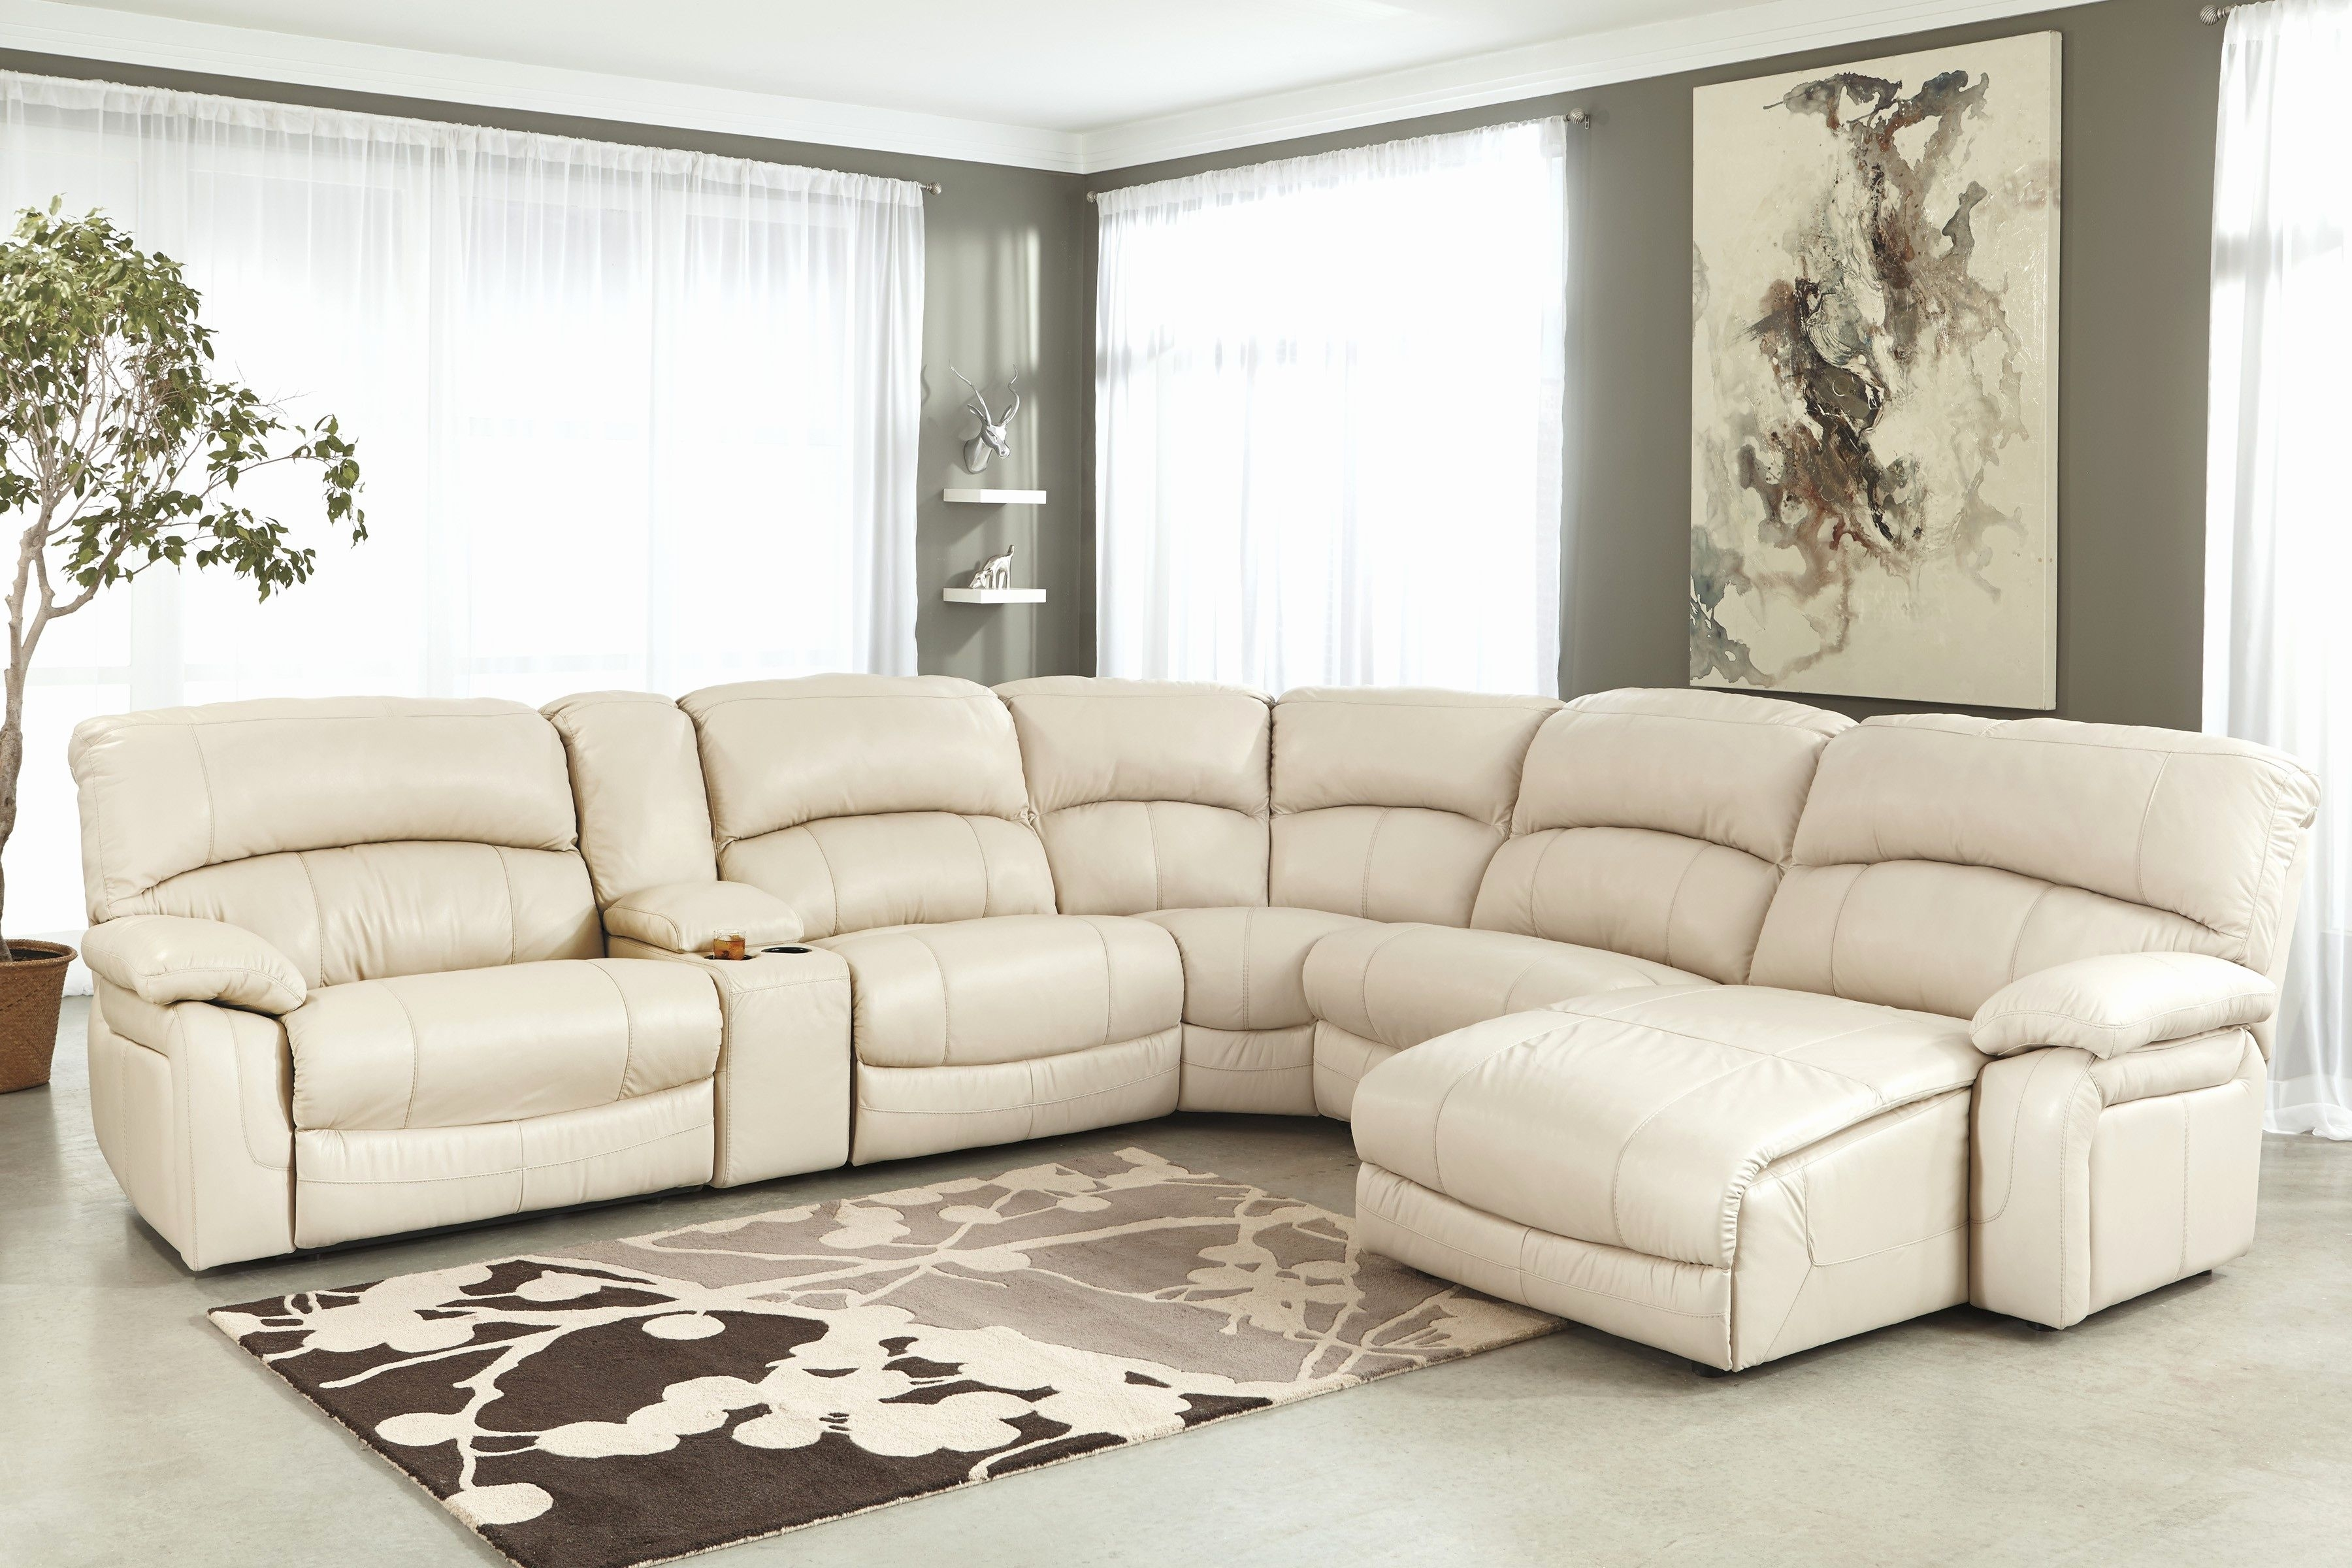 New Cream Sectional Sofa Pics Cream Leather Sectional Sofa With With Regard To Marcus Grey 6 Piece Sectionals With  Power Headrest & Usb (Photo 21 of 30)